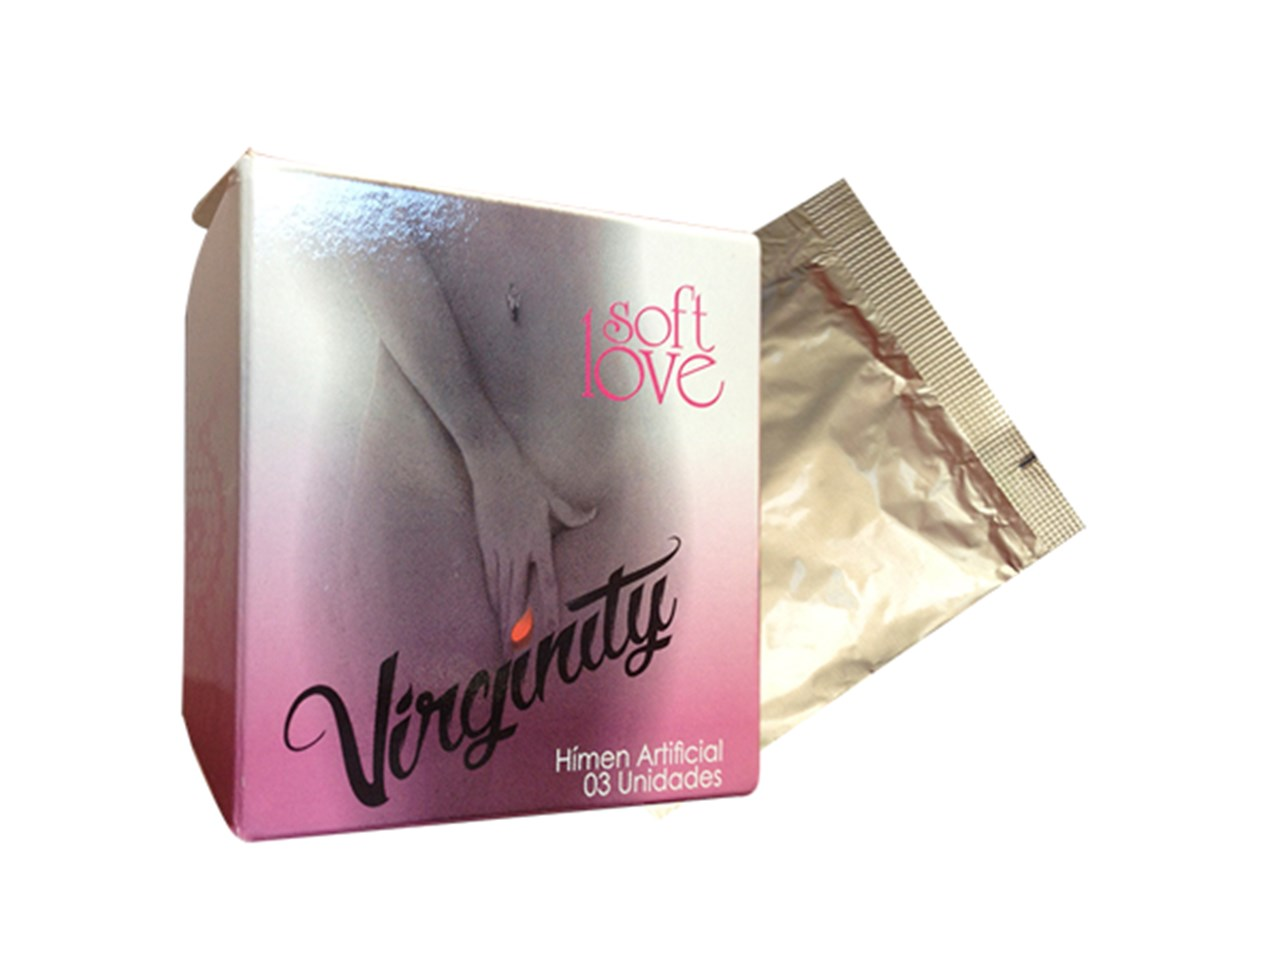 Virginity Hímen Artificial 3 und  - Soft Love